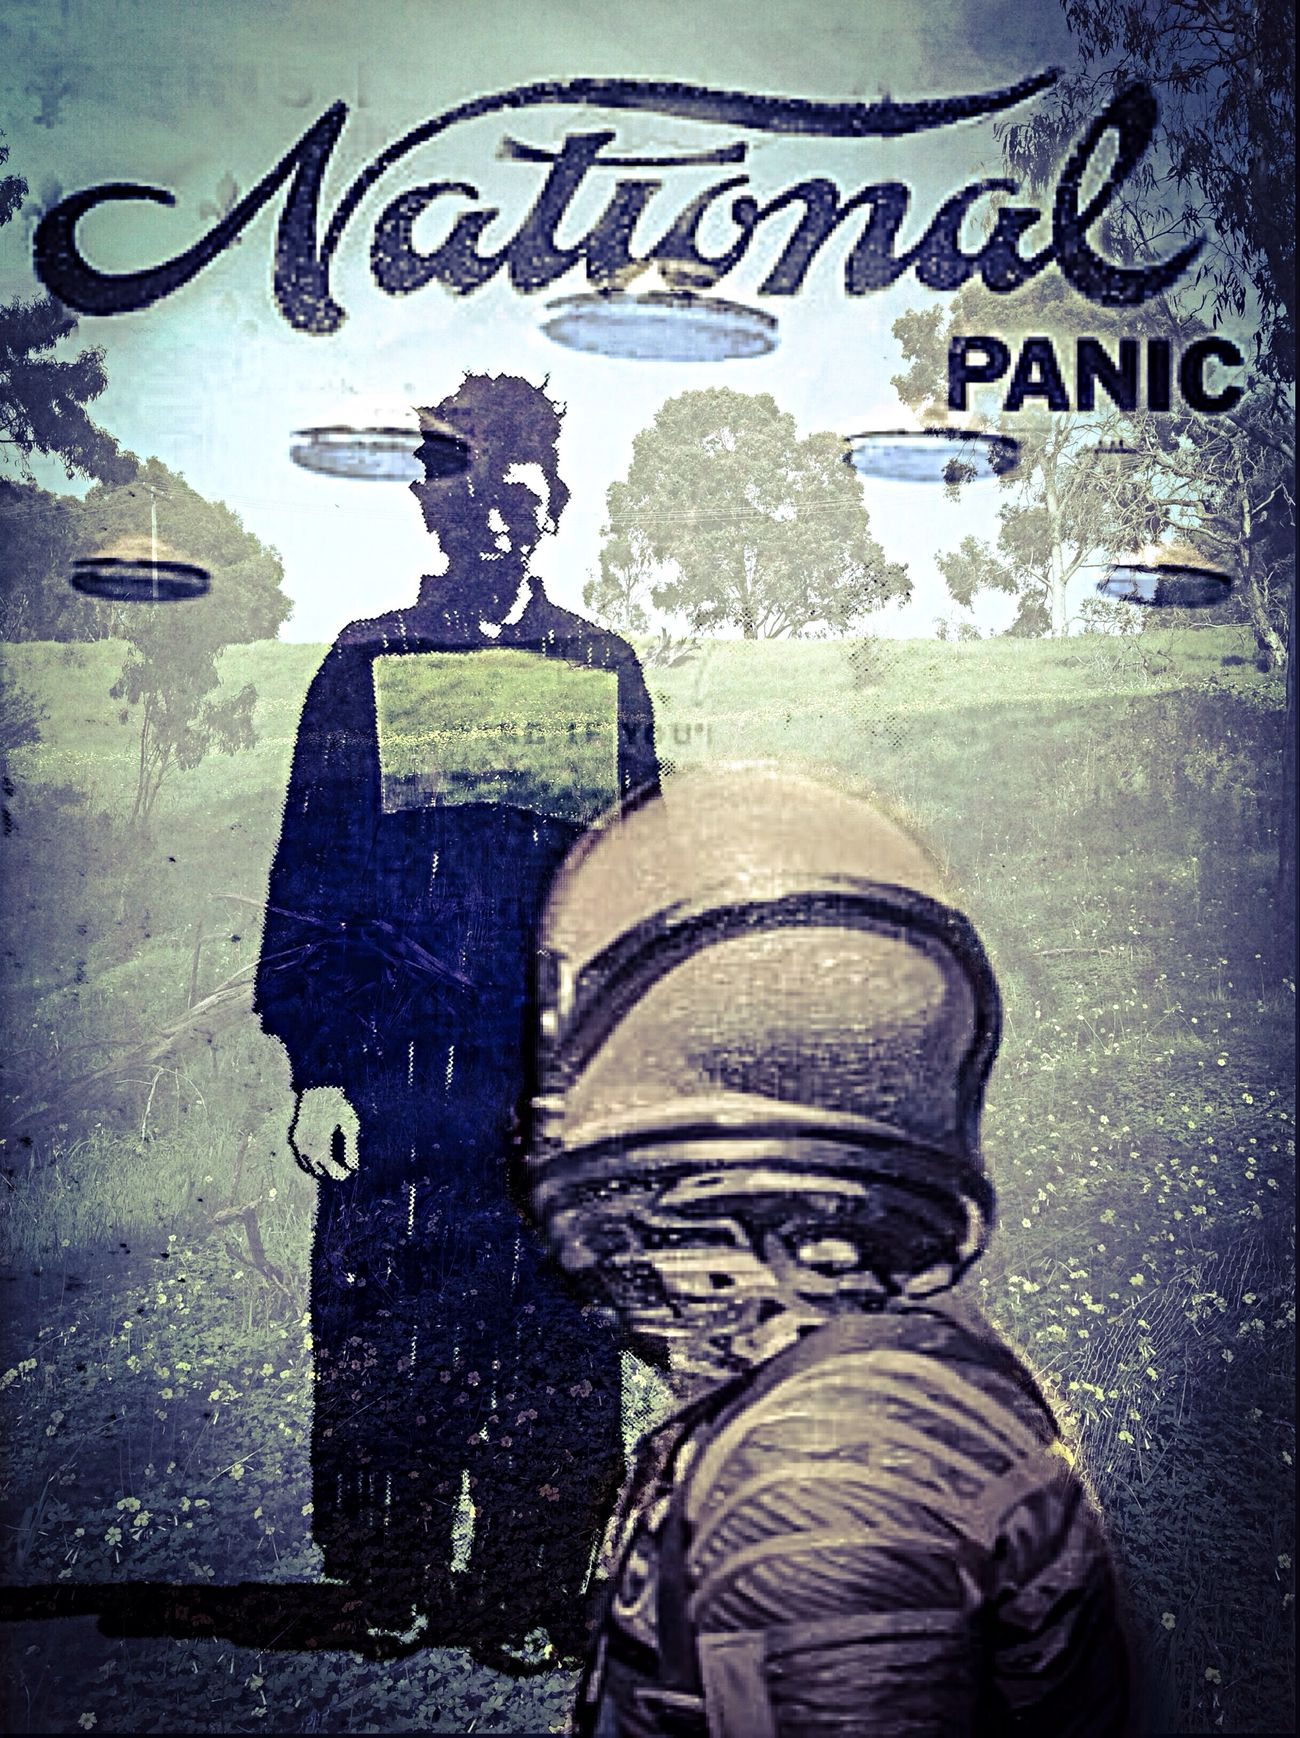 Read the National Panic Life Is Absurd!!!